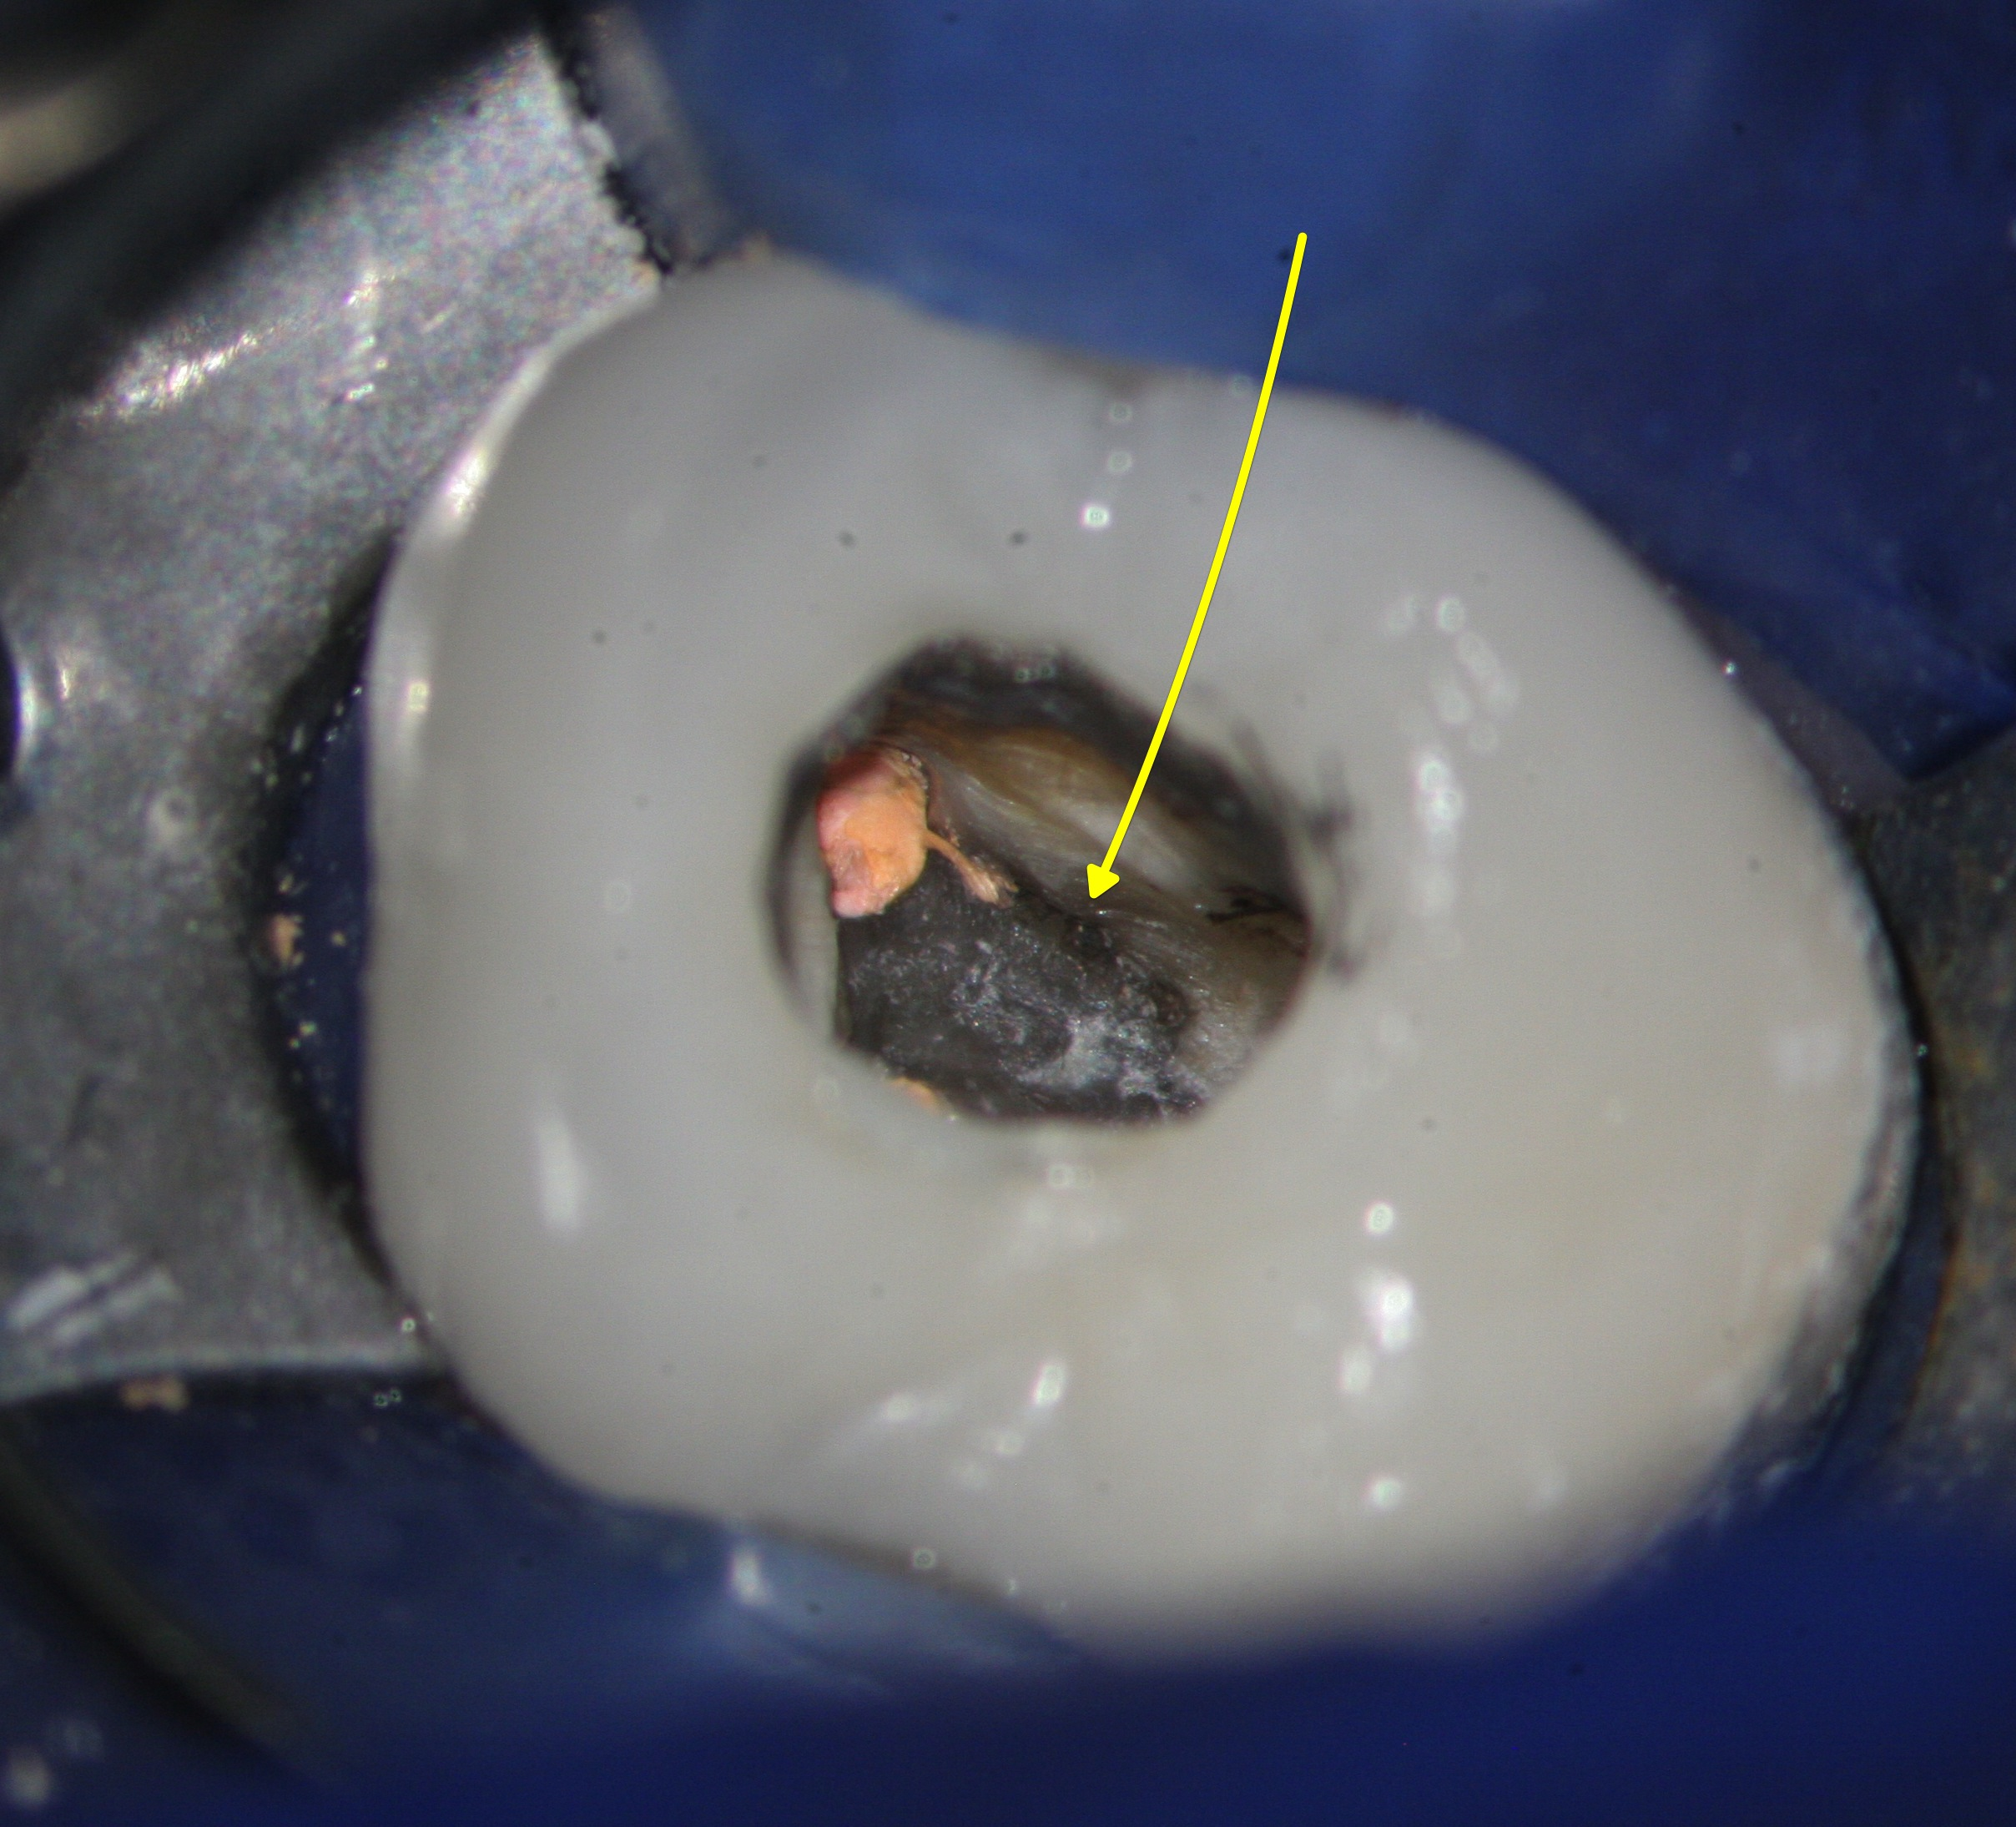 mb2 the missed canal Here you see the mb2 canal not treated in that mb root this tooth does not stand a chance to heal properly either i will tell you this mb2 was hard to find.